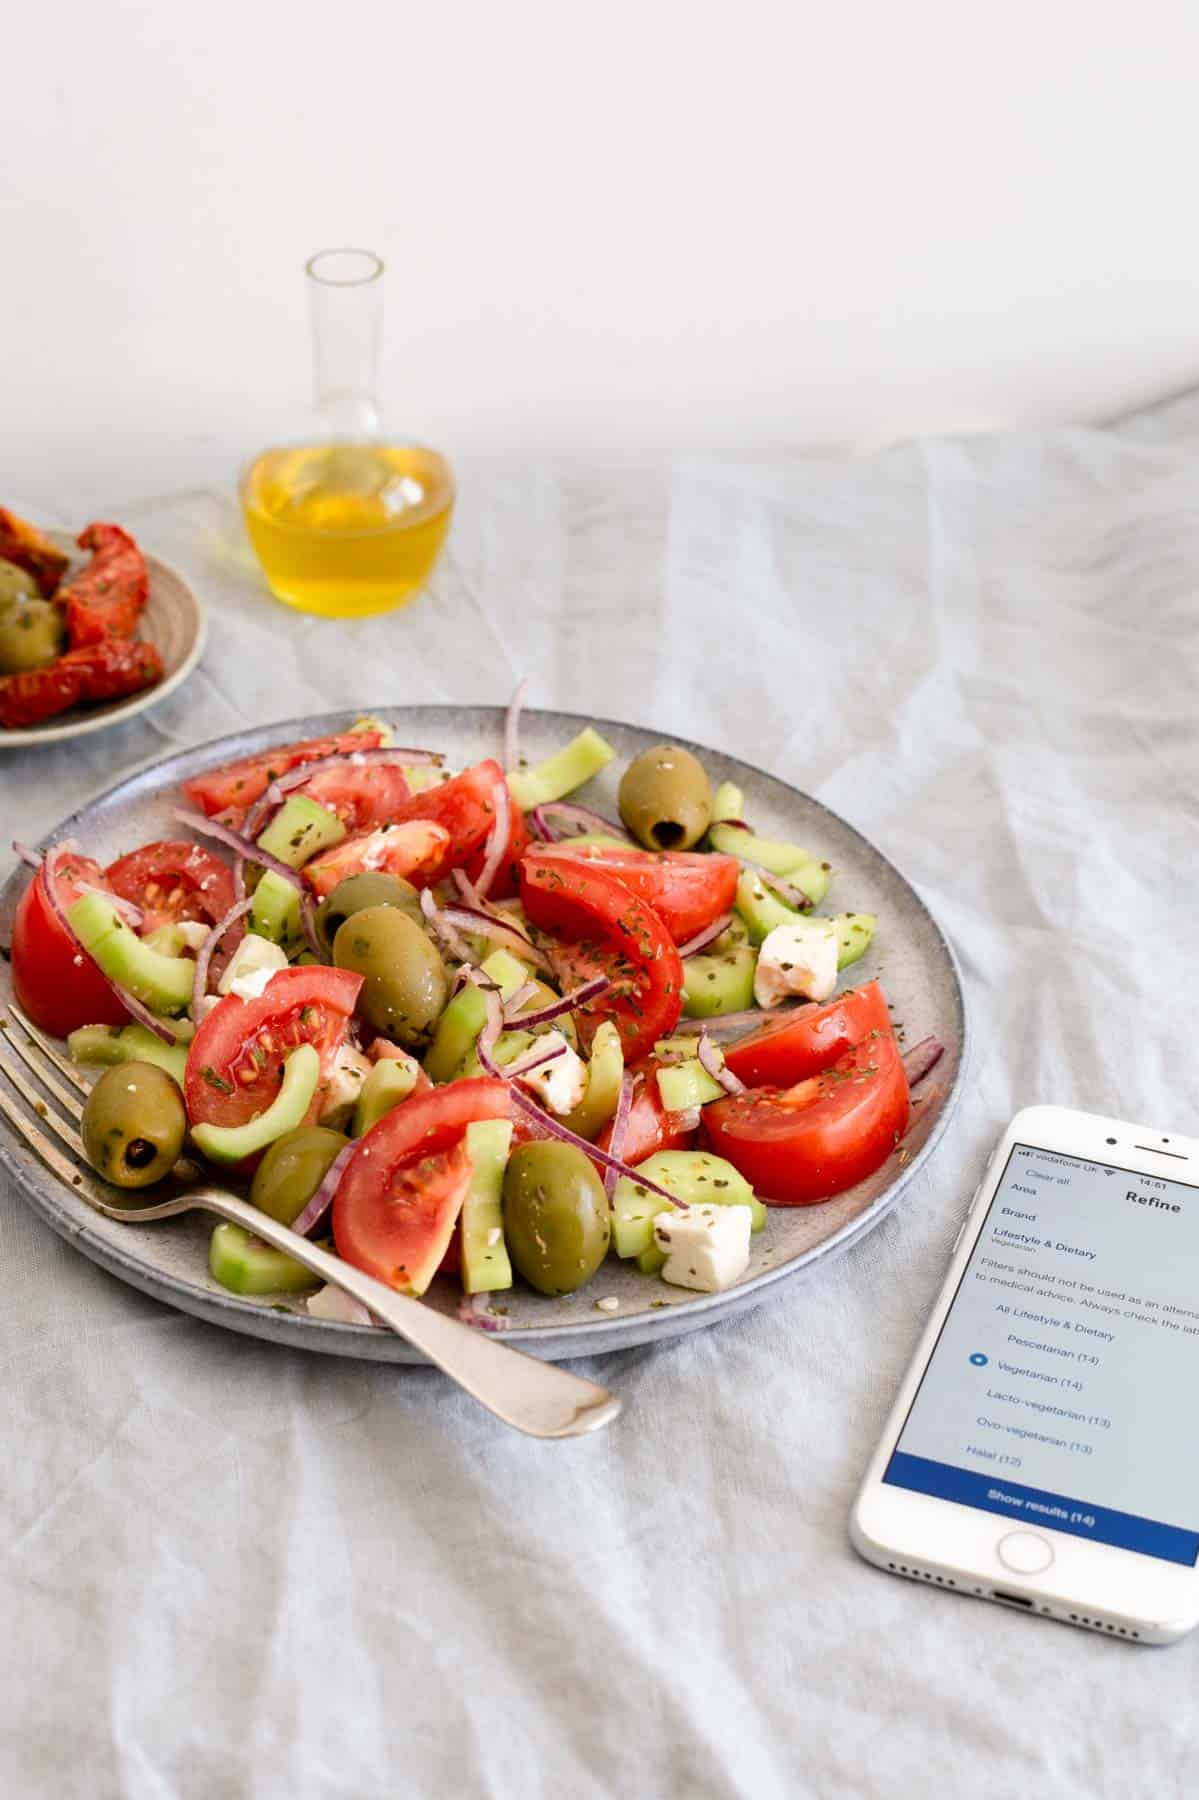 Easy Greek salad with simple ingredients. Buy your groceries with Tesco's app and try their new filtering tools to suit all of your dietary needs!